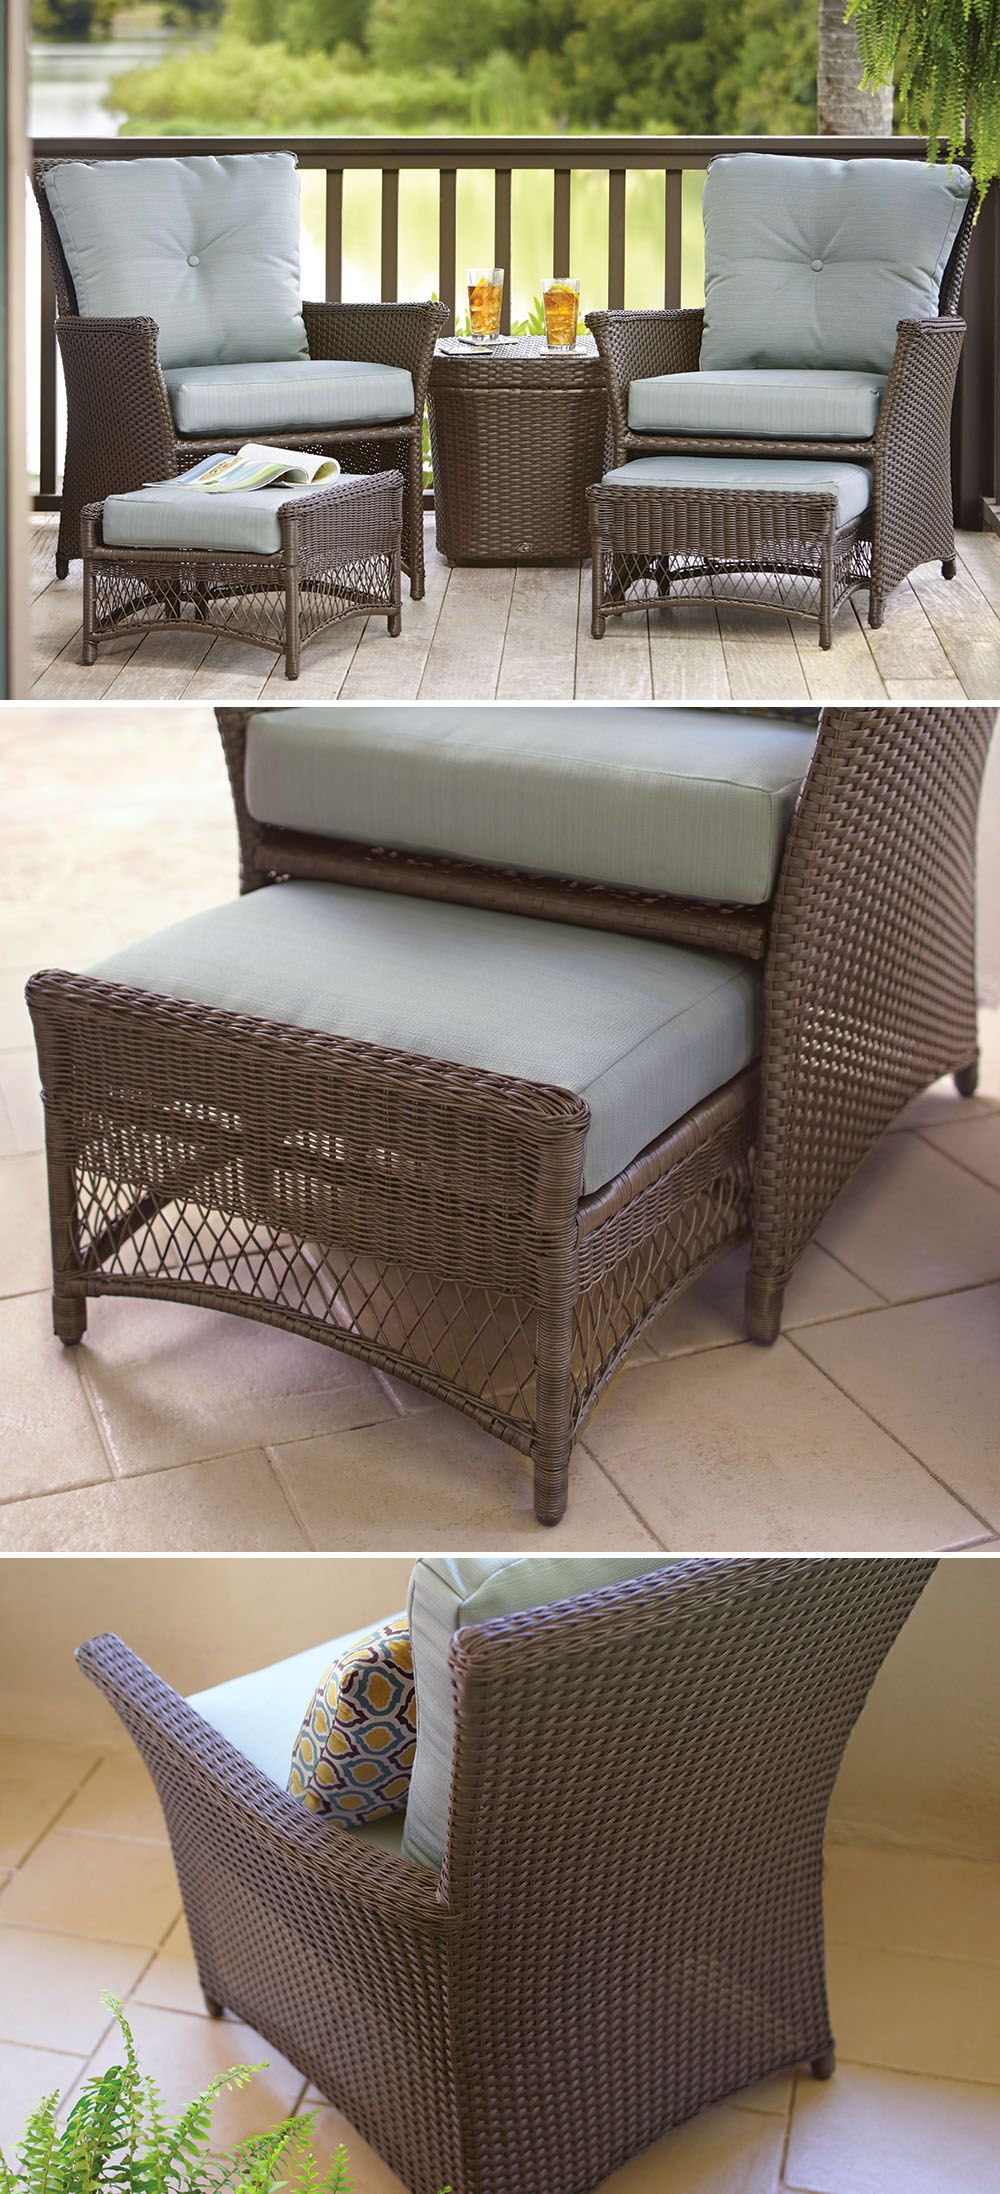 Discount Deck Furniture This Affordable Patio Set Is Just The Right Size For Your Small